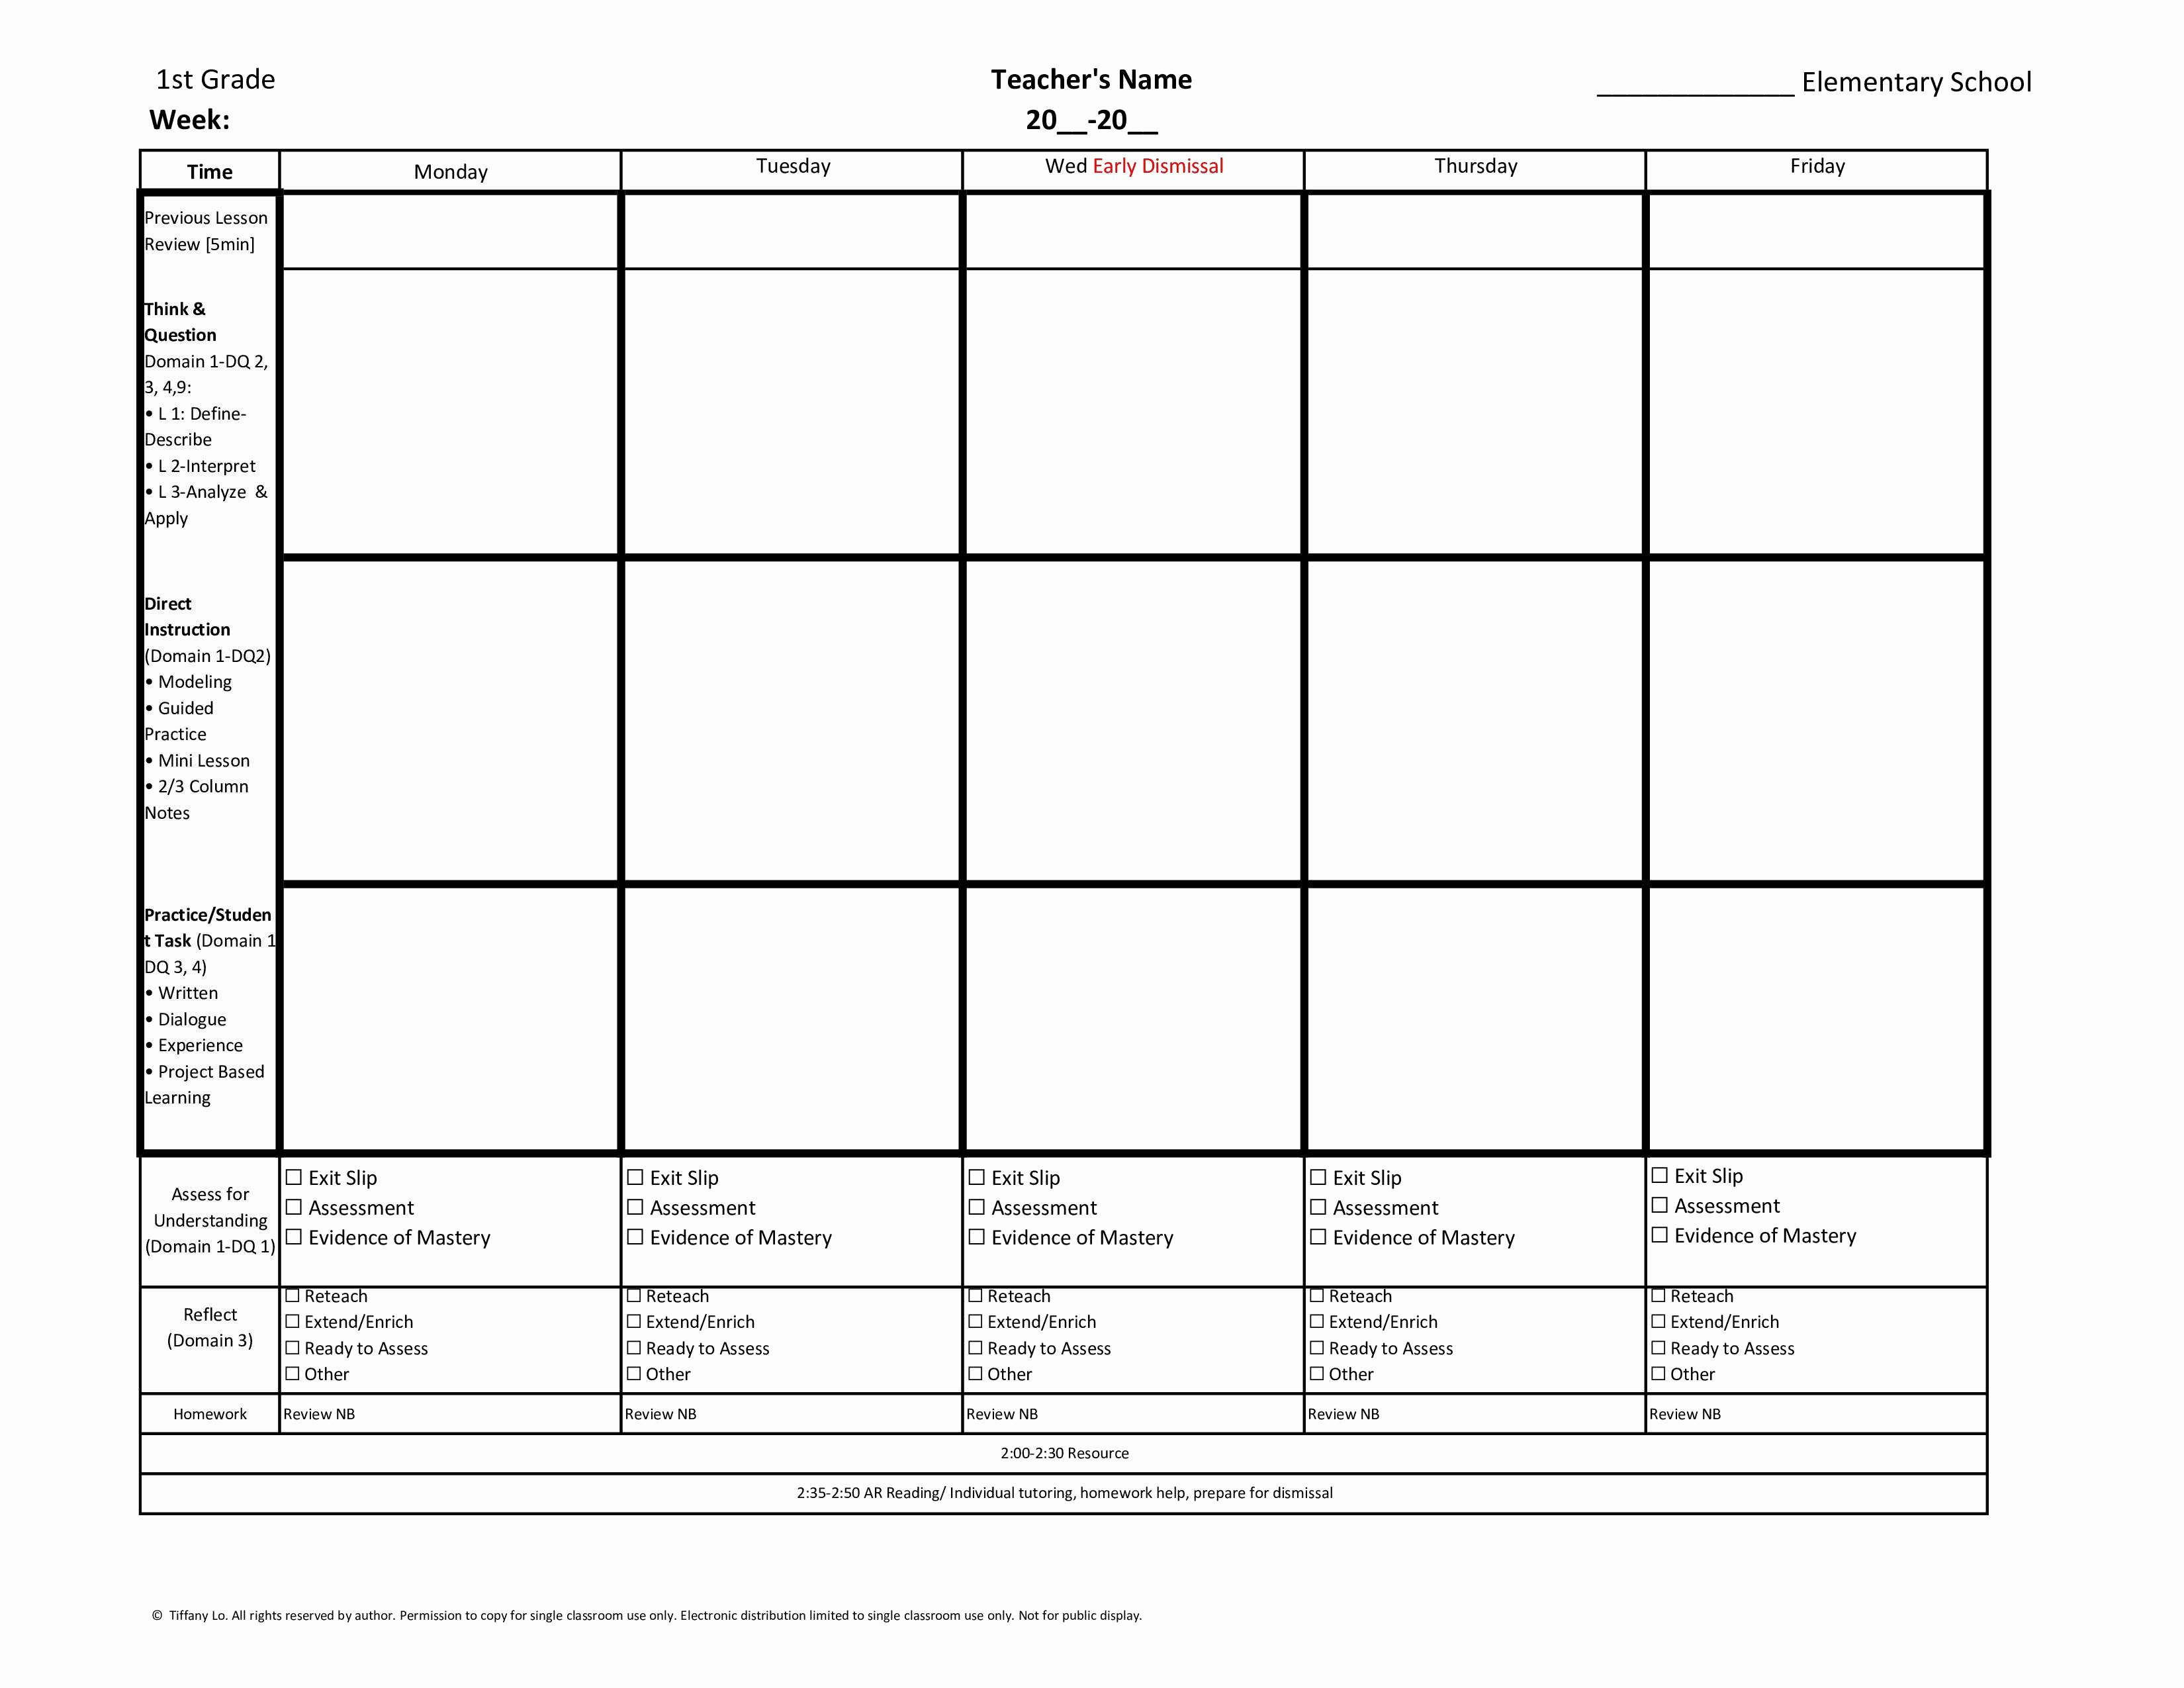 Free Weekly Lesson Plan Template Luxury 1st First Grade Mon Core Weekly Lesson Plan Template W